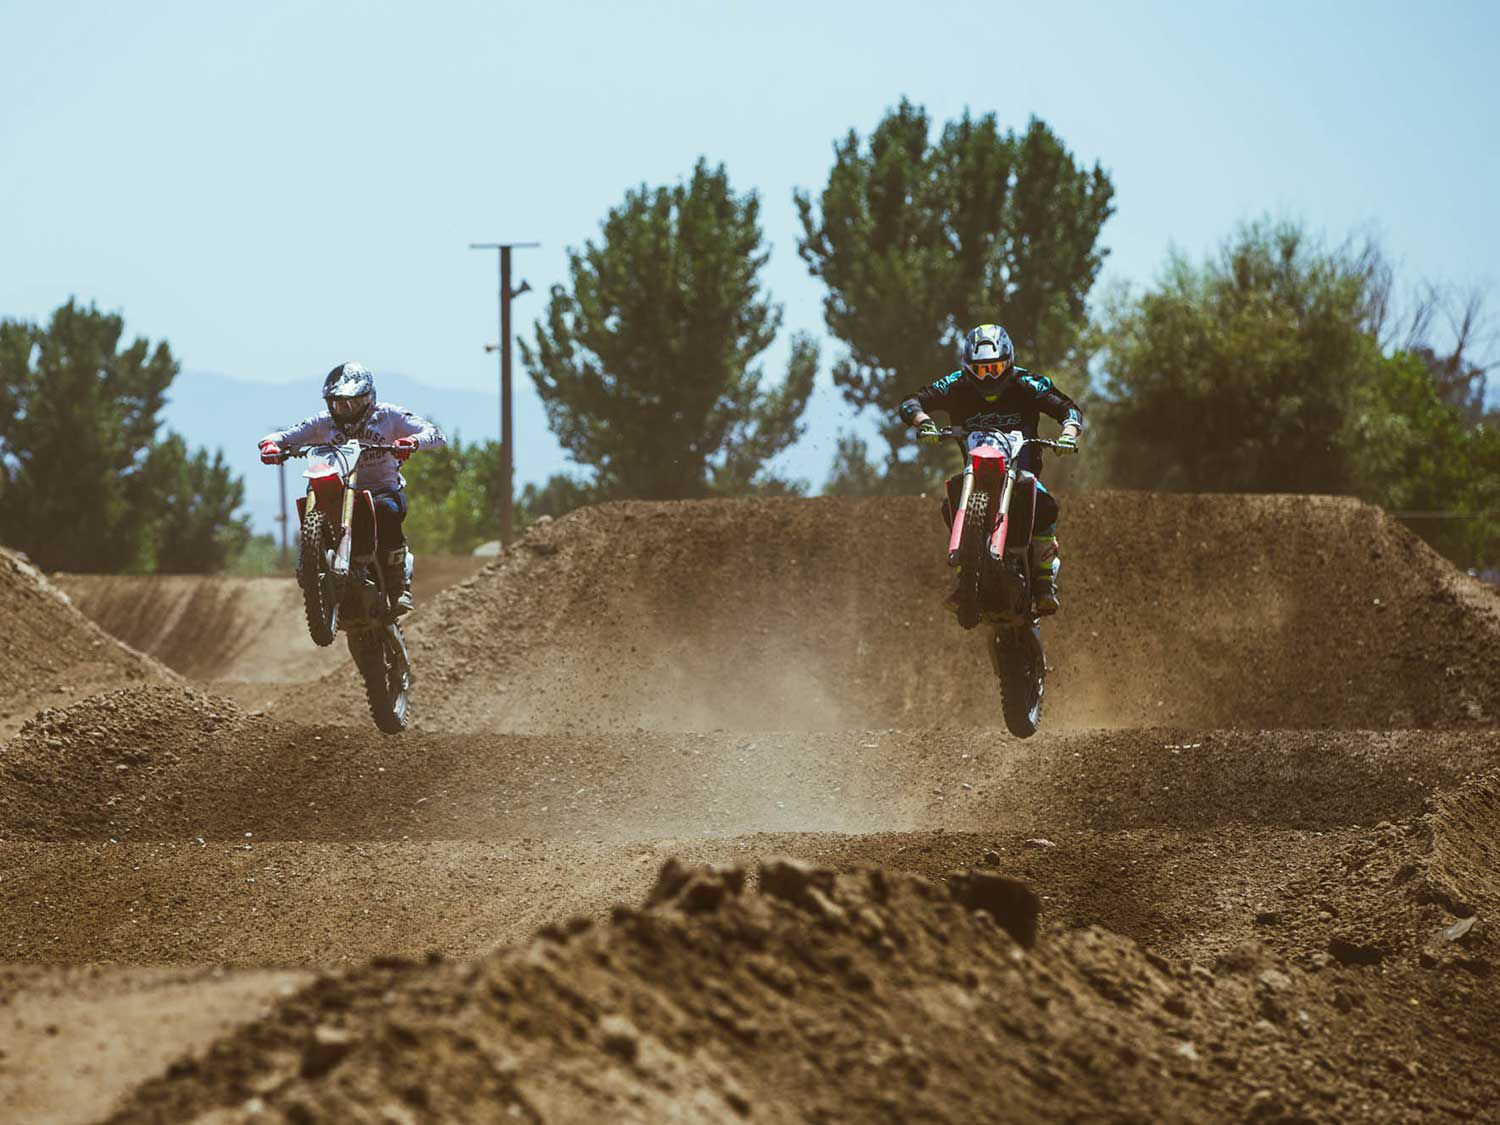 Local pro Ford Heit adds a bit of style during the moto day at Milestone Motocross Park.